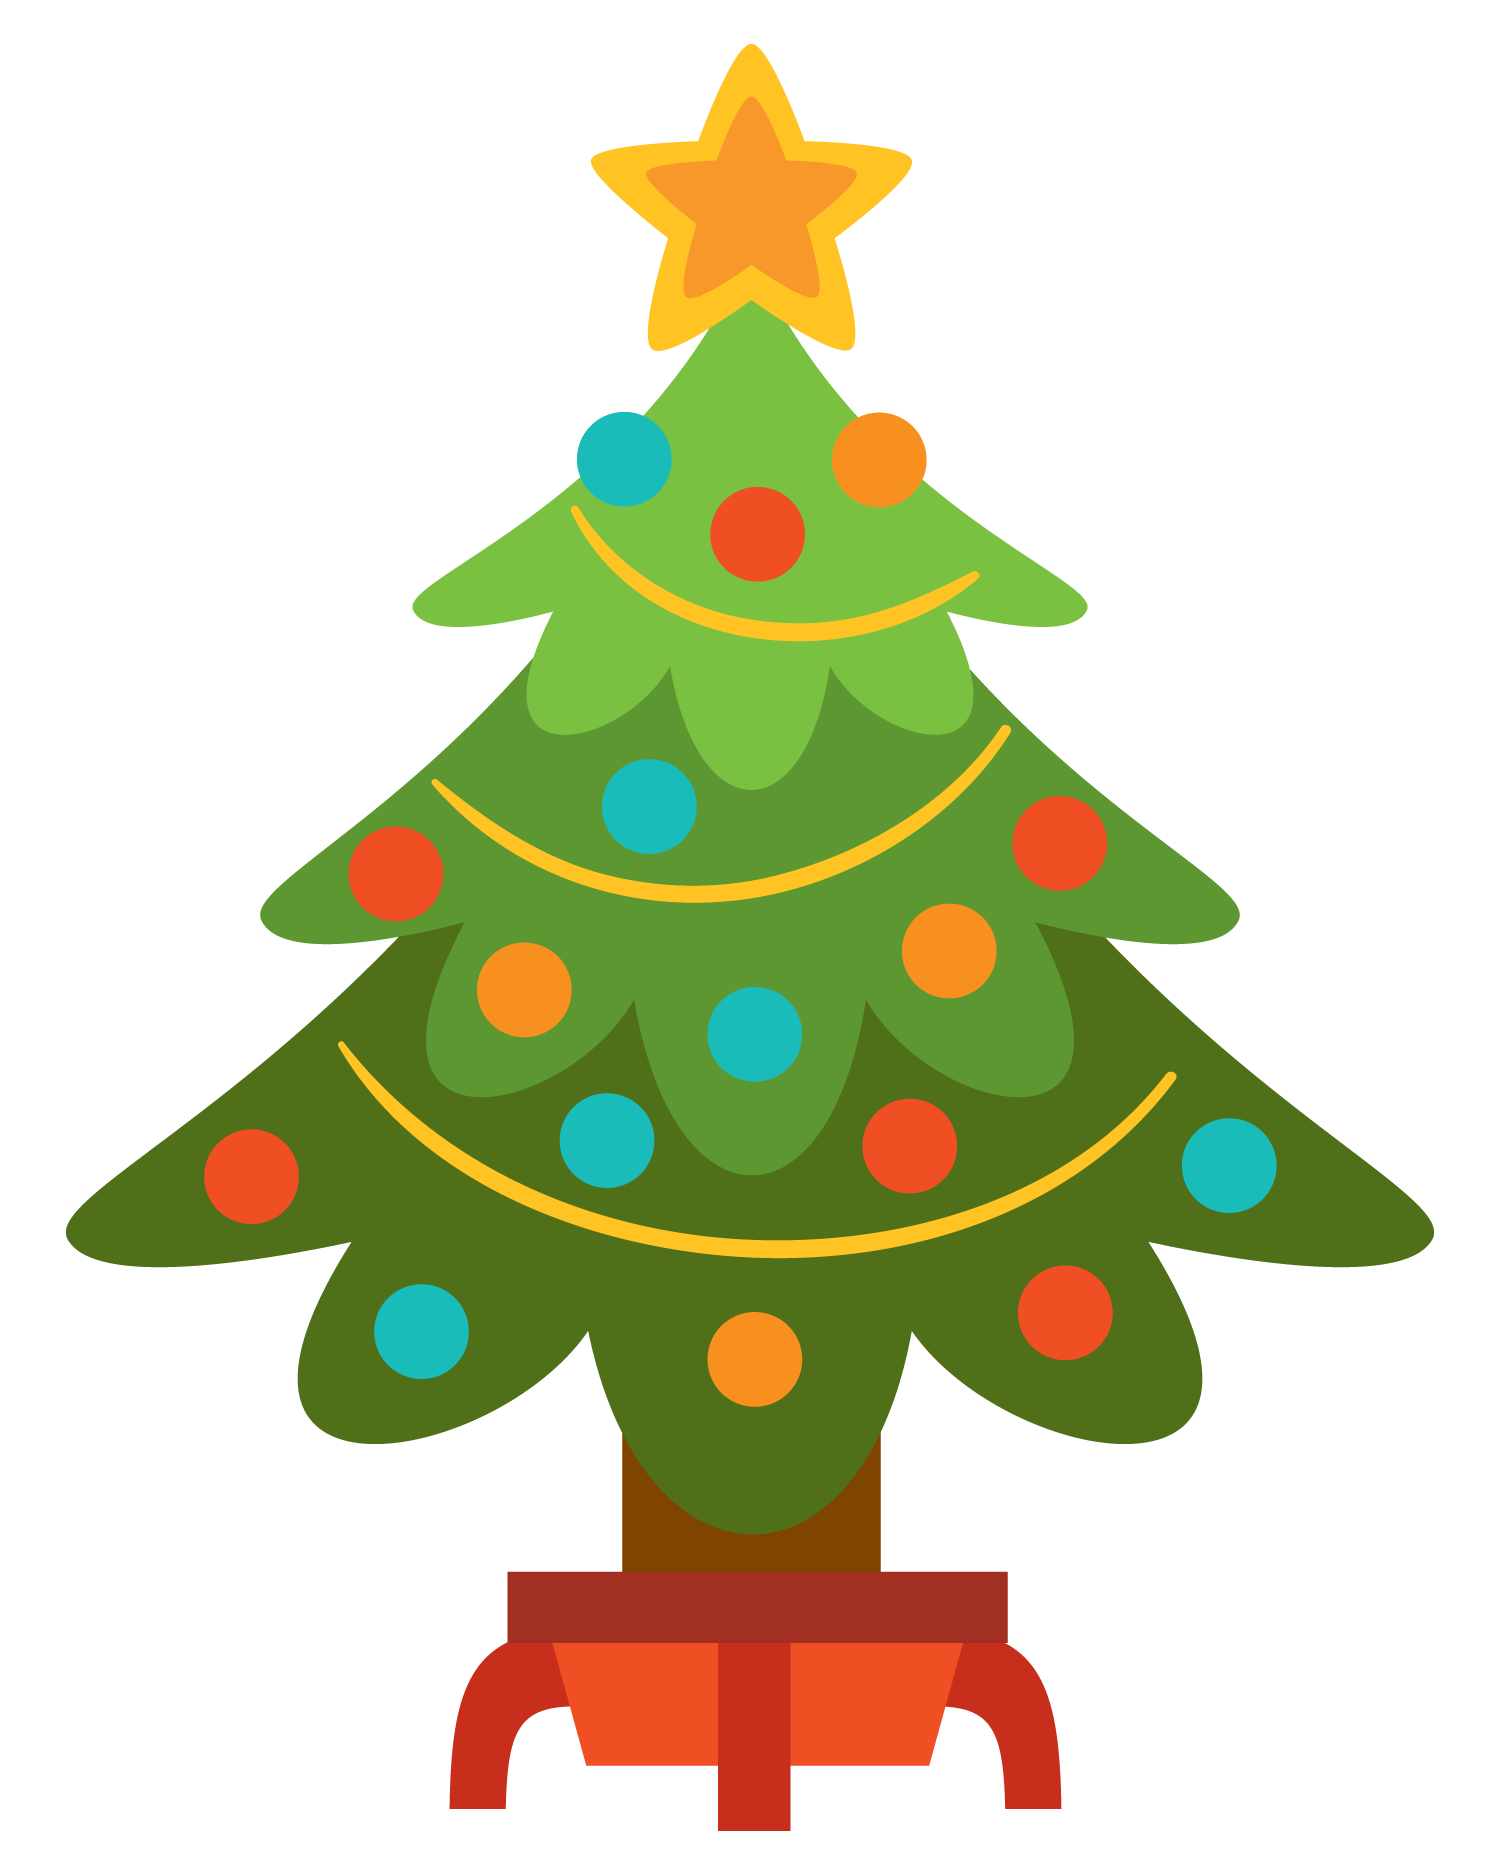 Christmas Tree clipart easy Cliparts Christmas Simple Art Tree